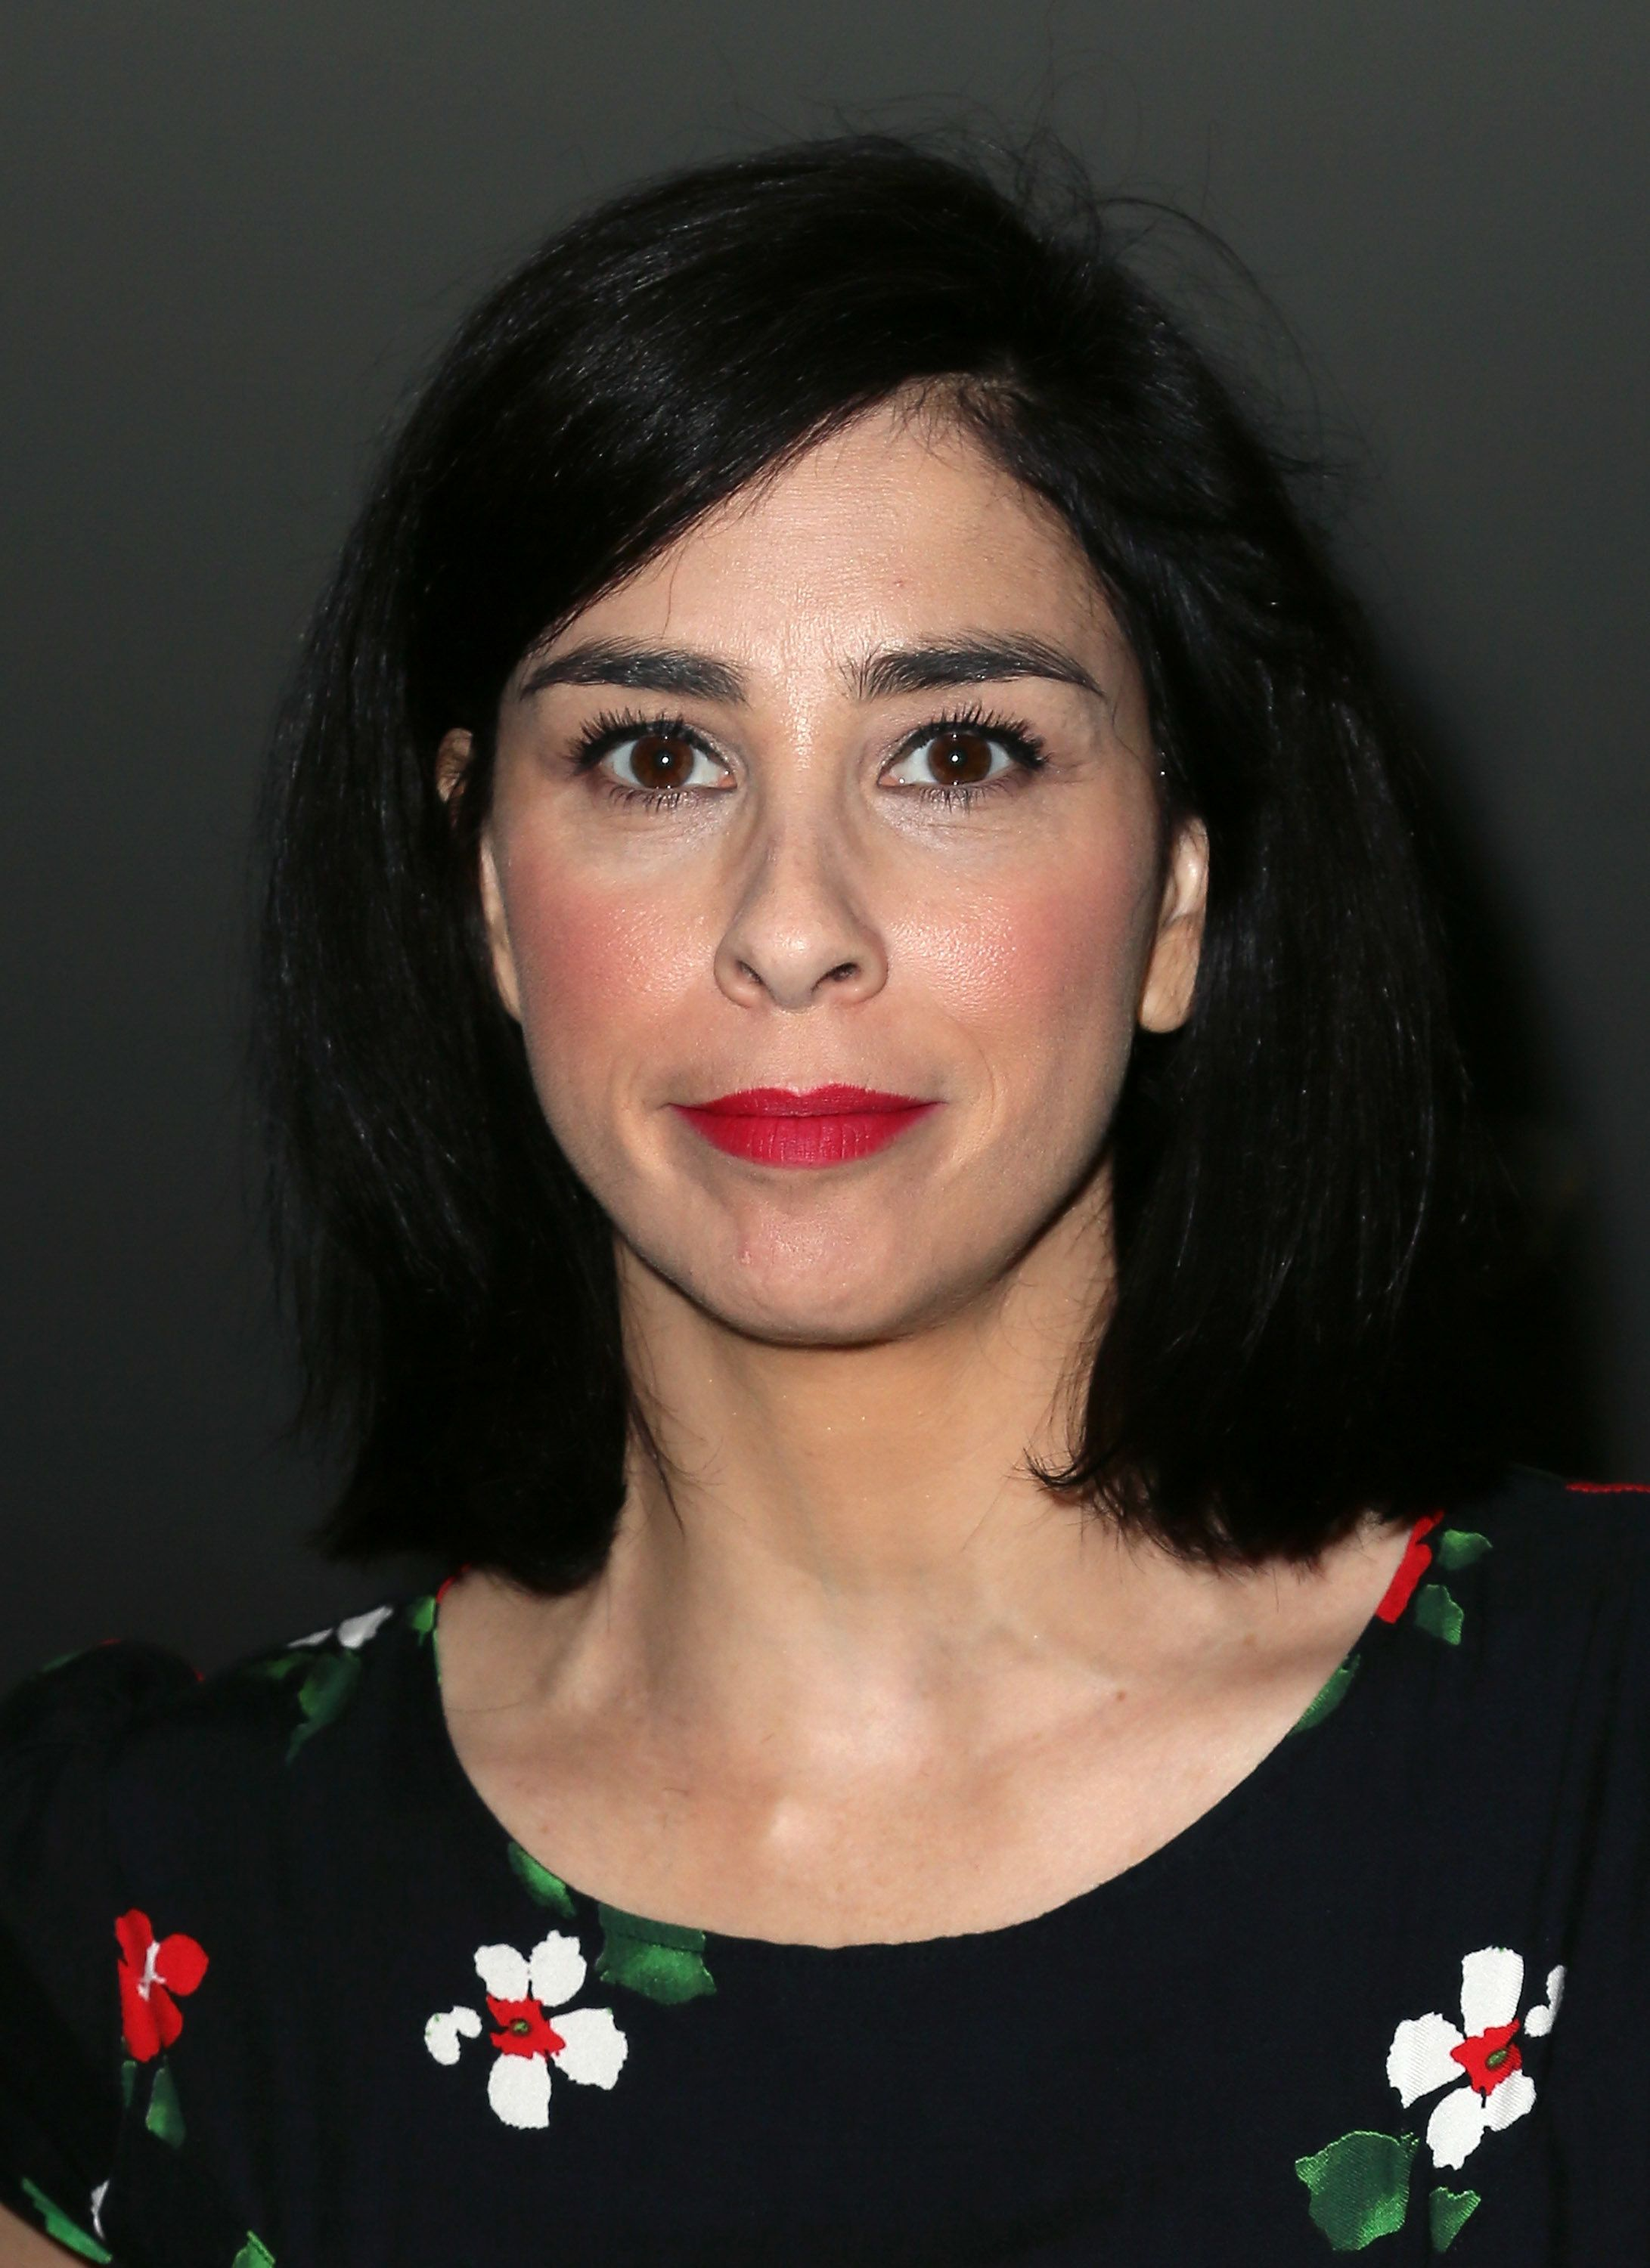 Sarah Silverman 'Lucky To Be Alive' After Potentially Lethal